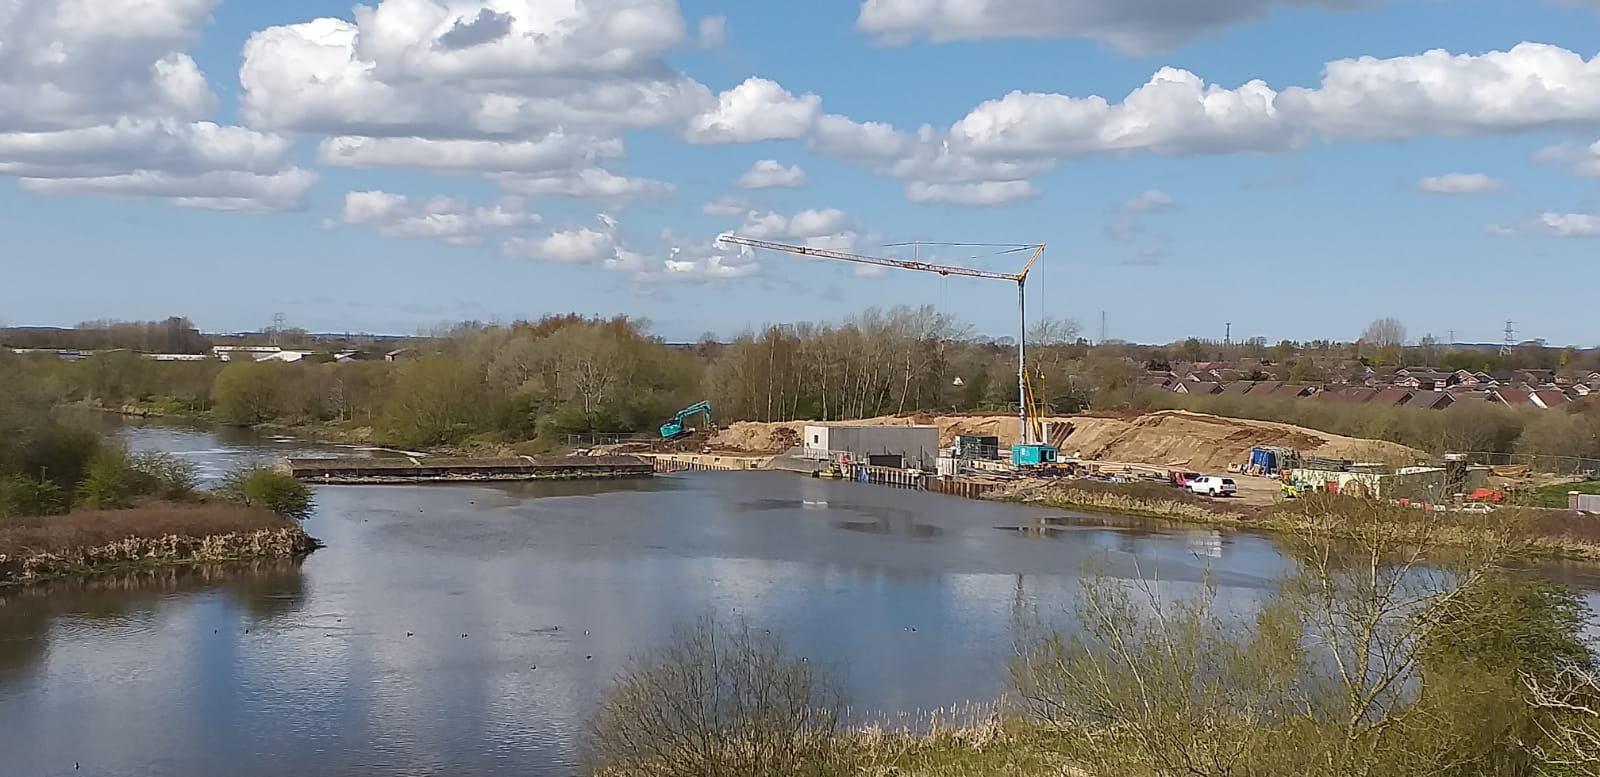 Pictures show construction work on hydropower scheme on Mersey progressing apace